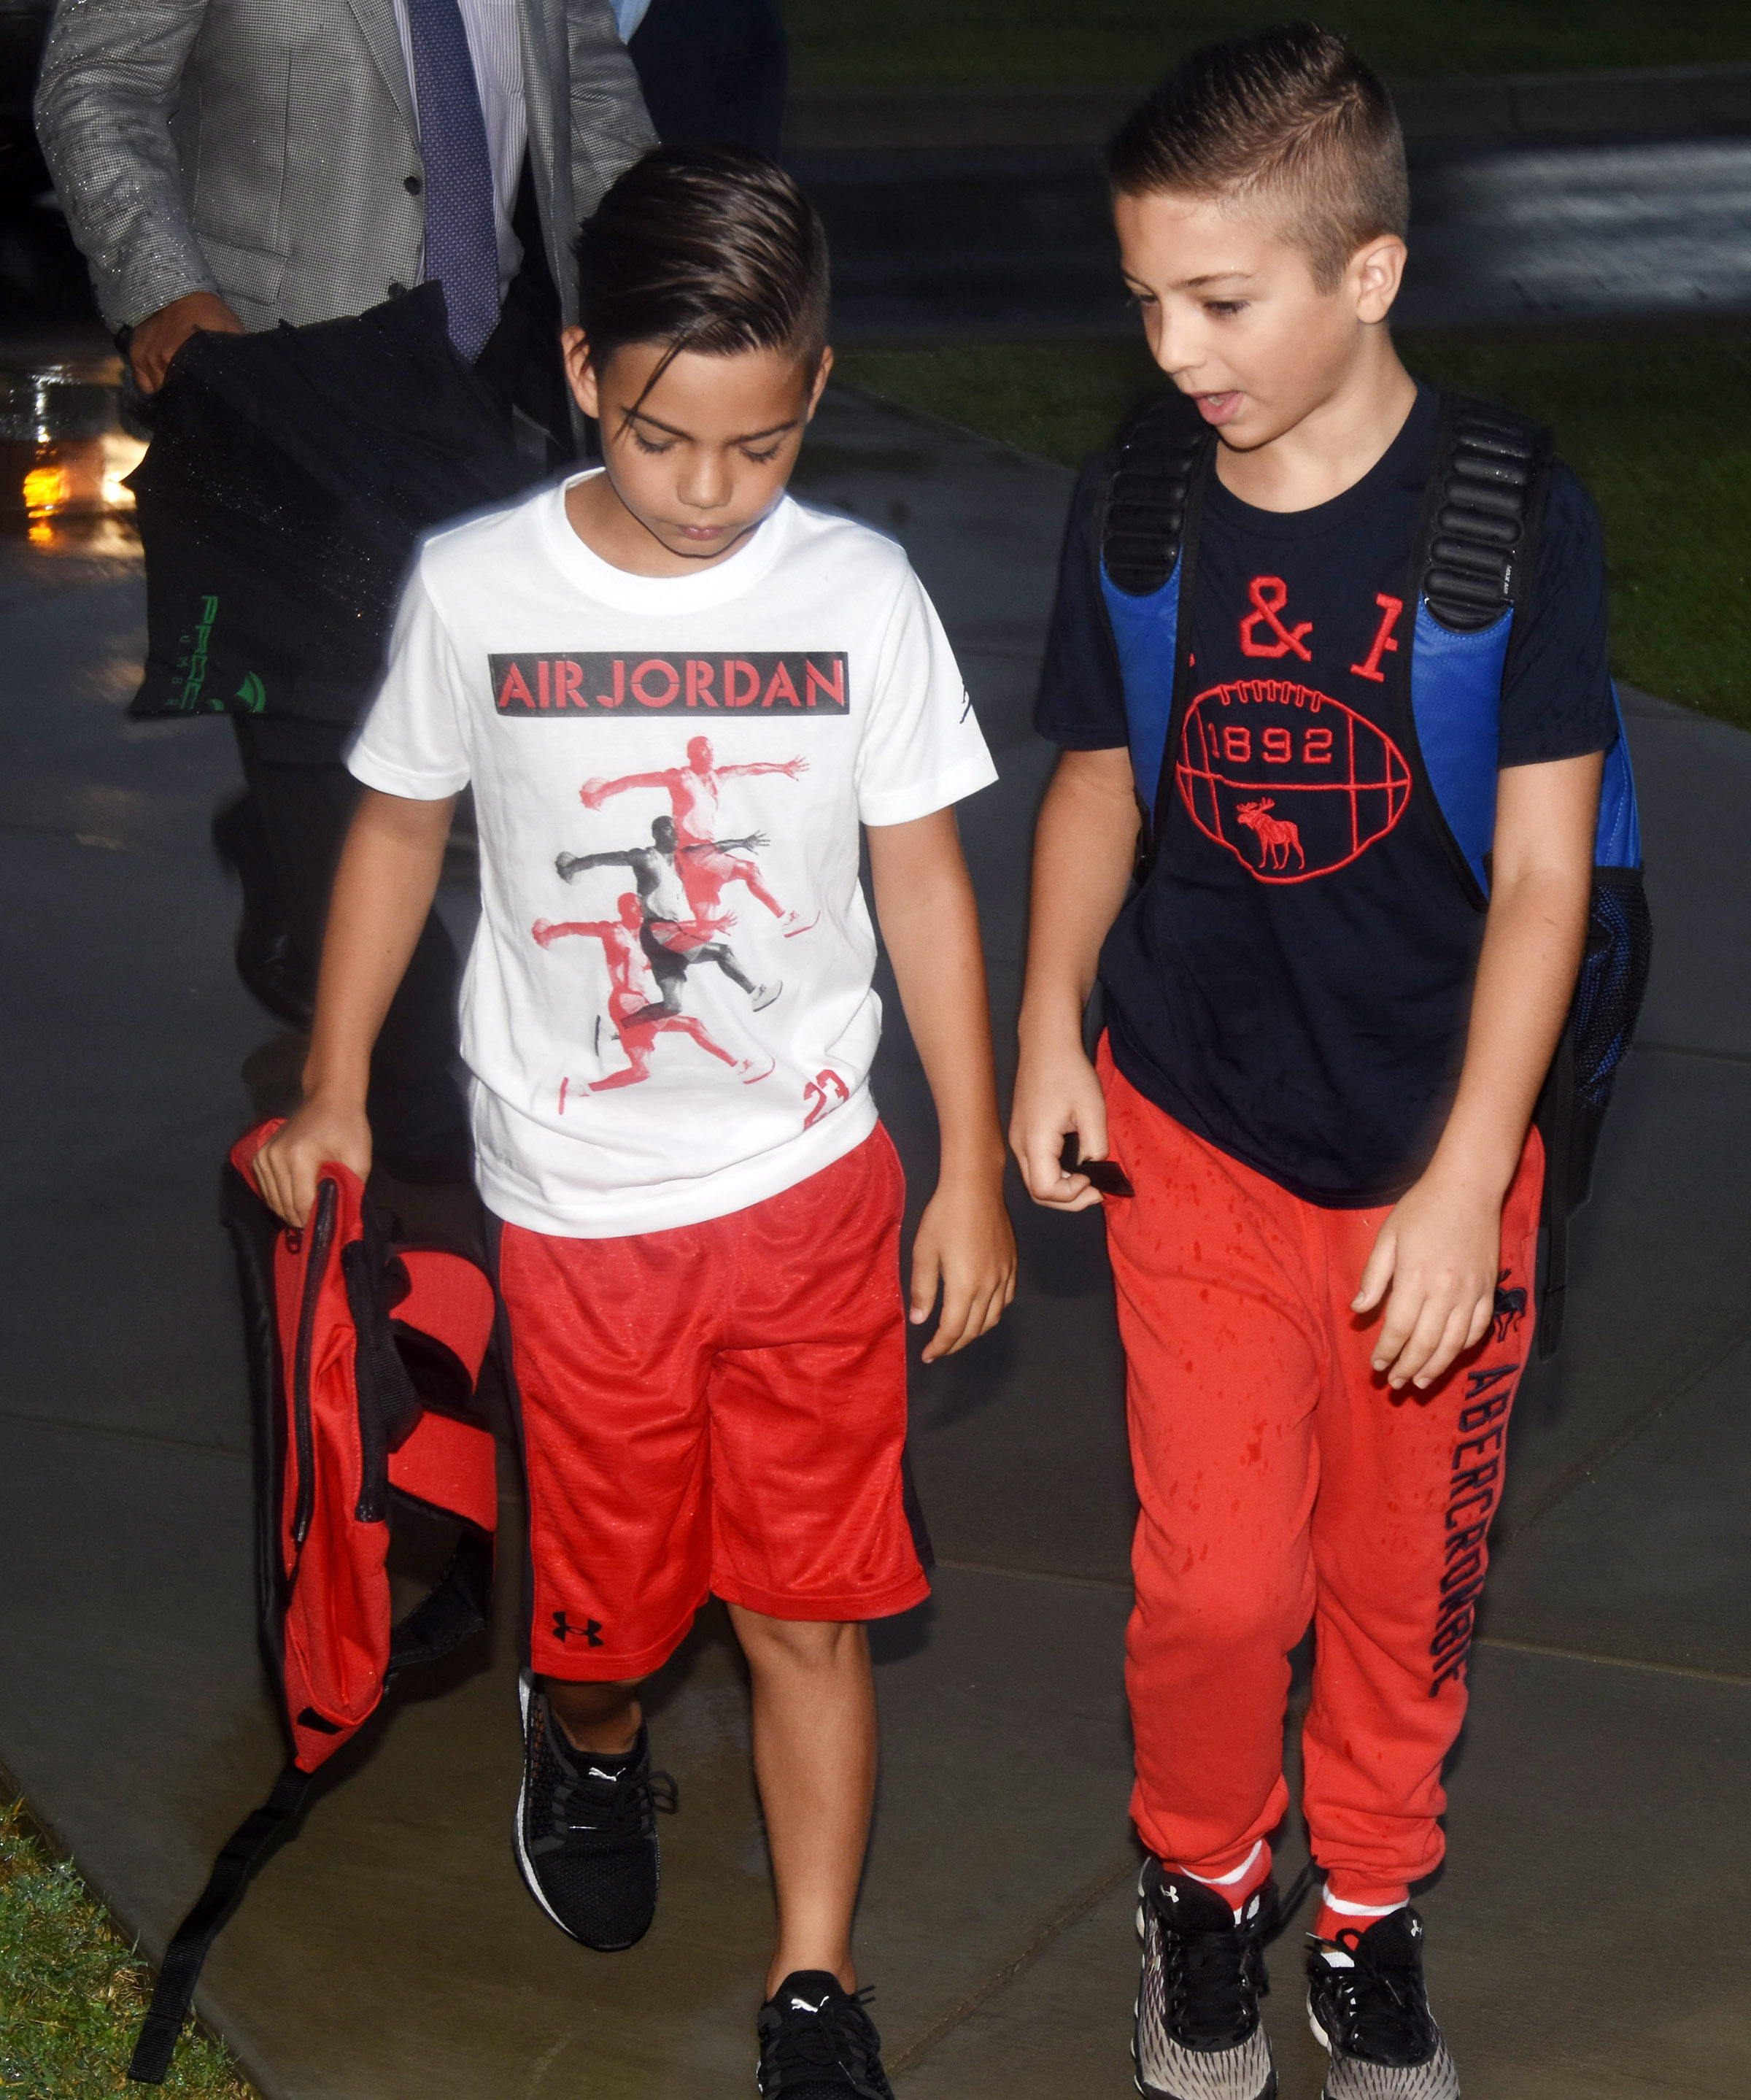 Campbellsville Elementary School fifth-graders Easton Williams, at left, and Carson Mills walk in for the first day of school.